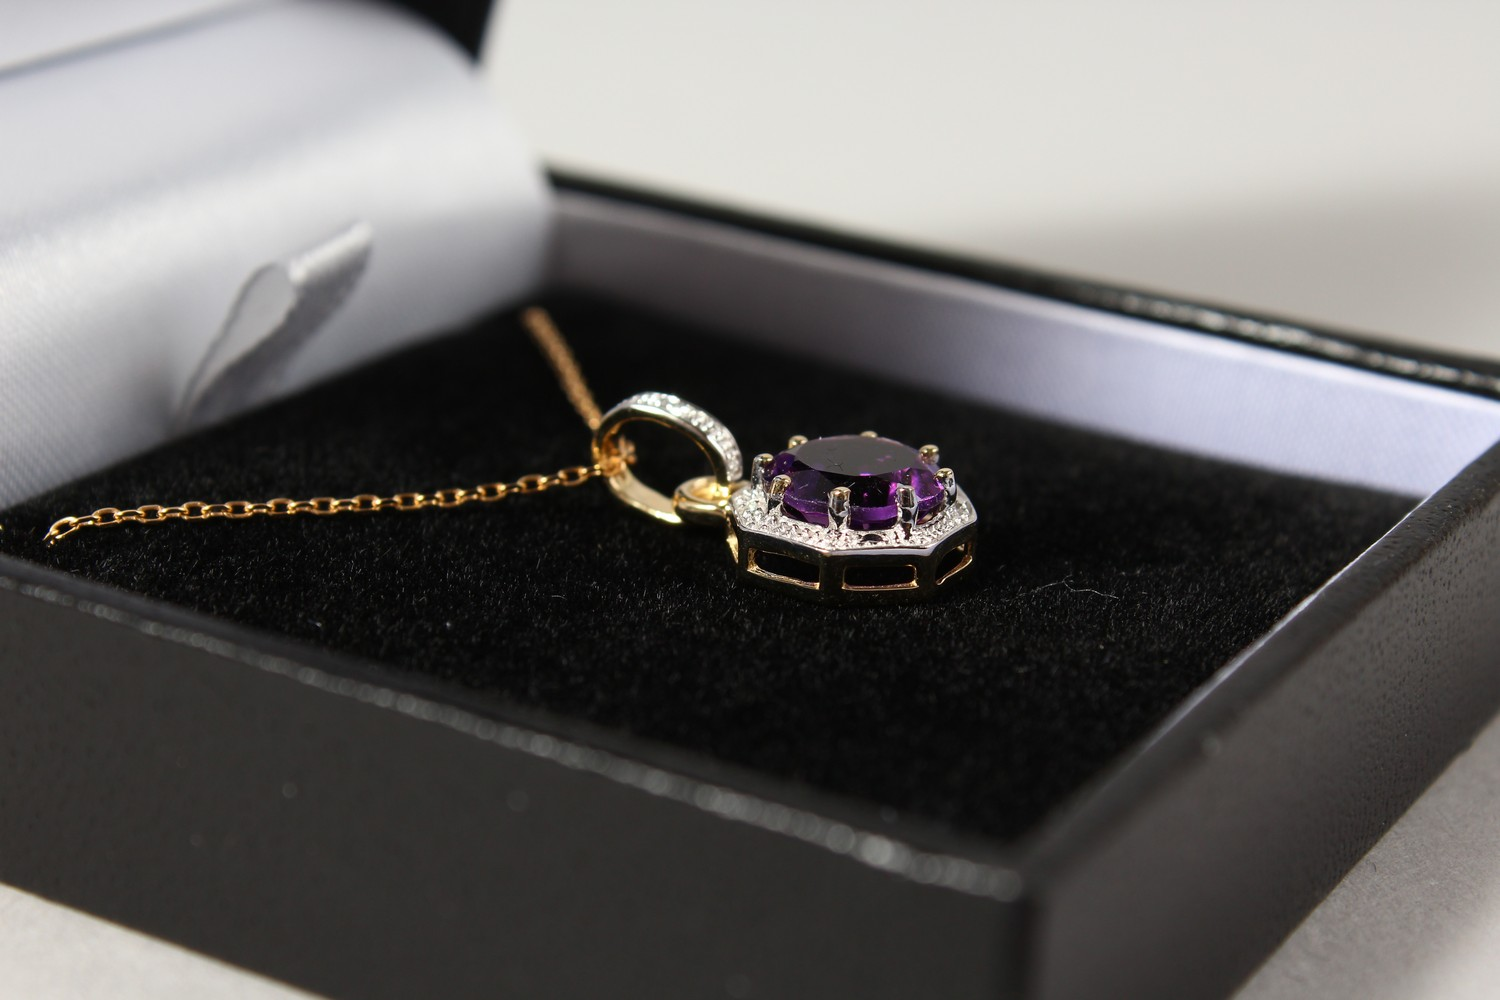 Lot 1785 - A 9CT GOLD, AMETHYST AND DIAMOND PENDANT AND CHAIN.